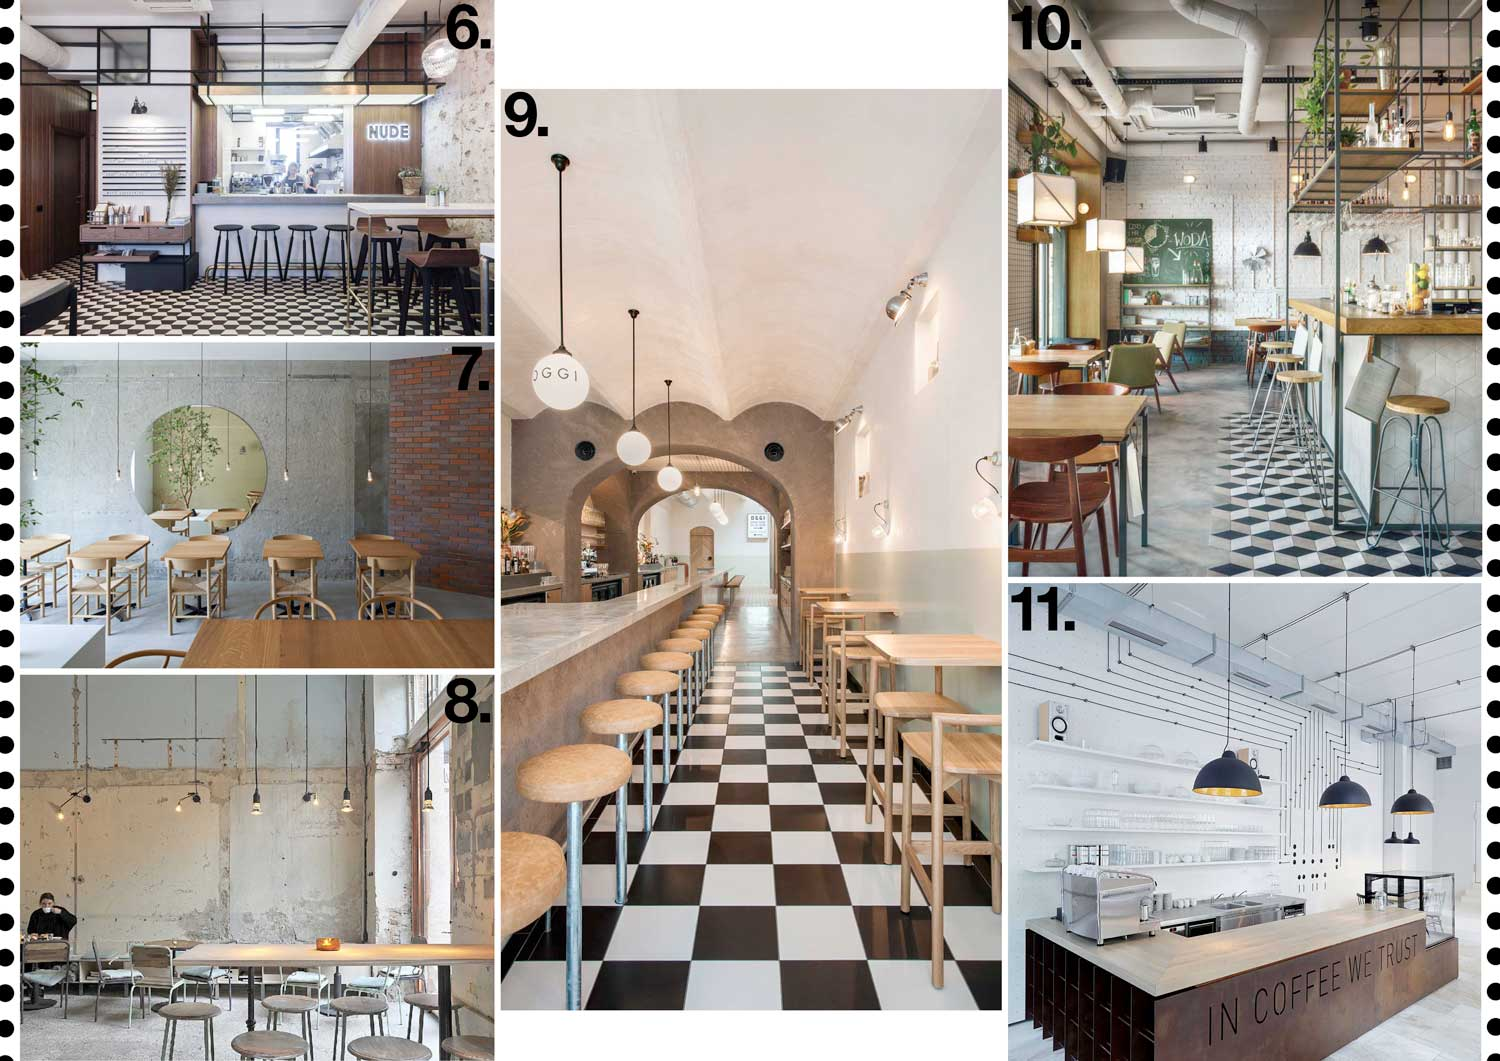 hospitality interior design   yellowtrace 2015 archive.